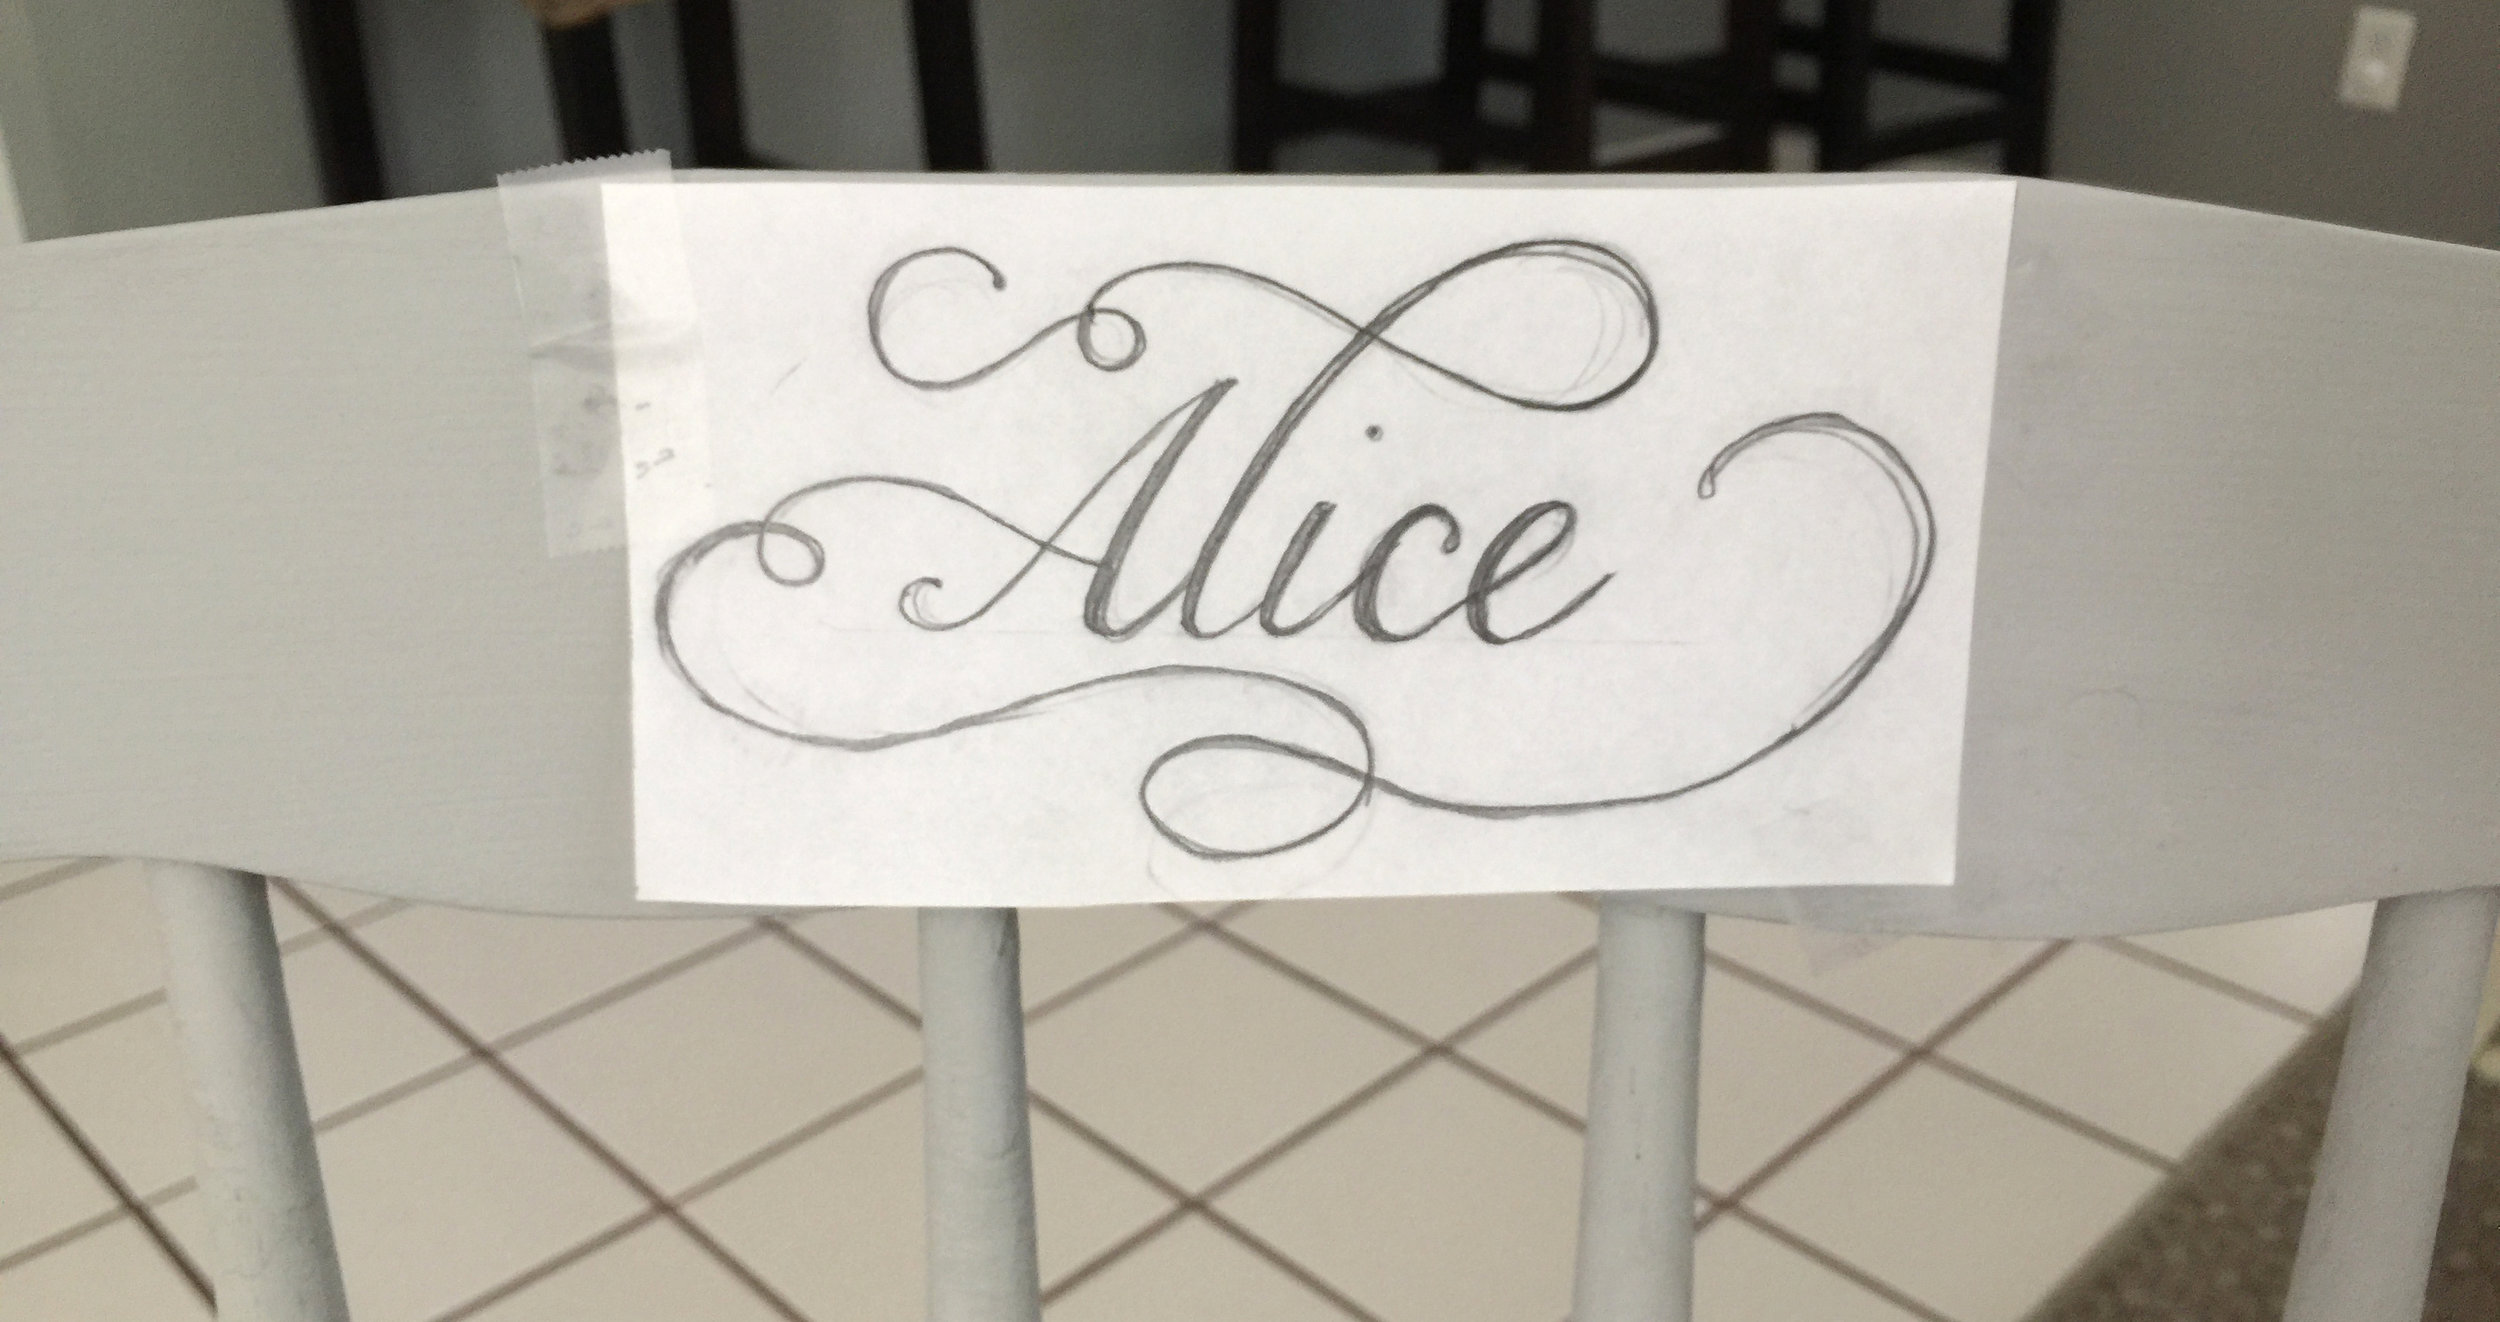 Alice_paper_taped.jpg